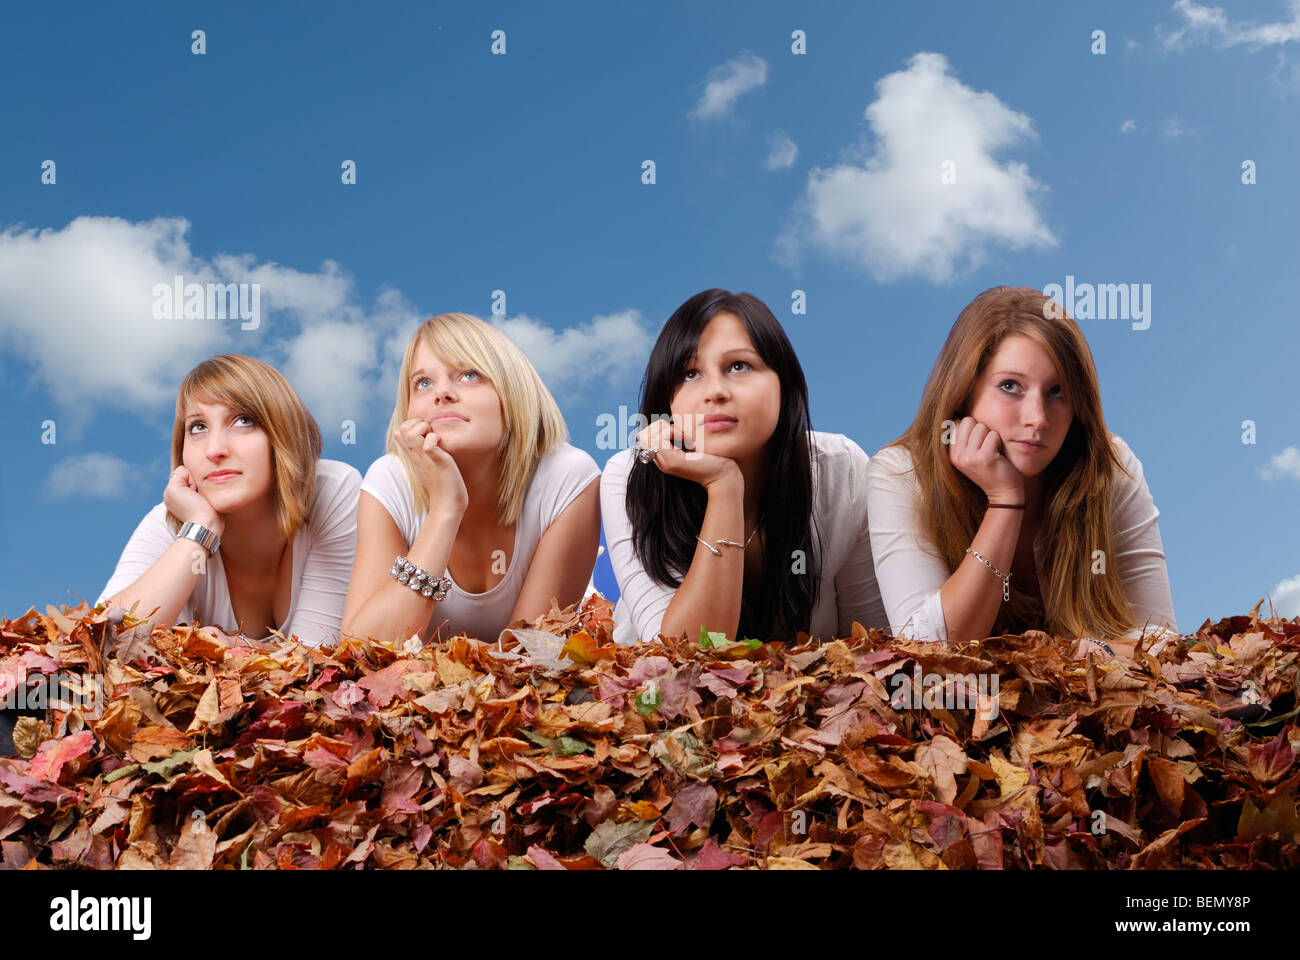 group of young woman lying in autumn leaves against a blue sky with clouds - Stock Image